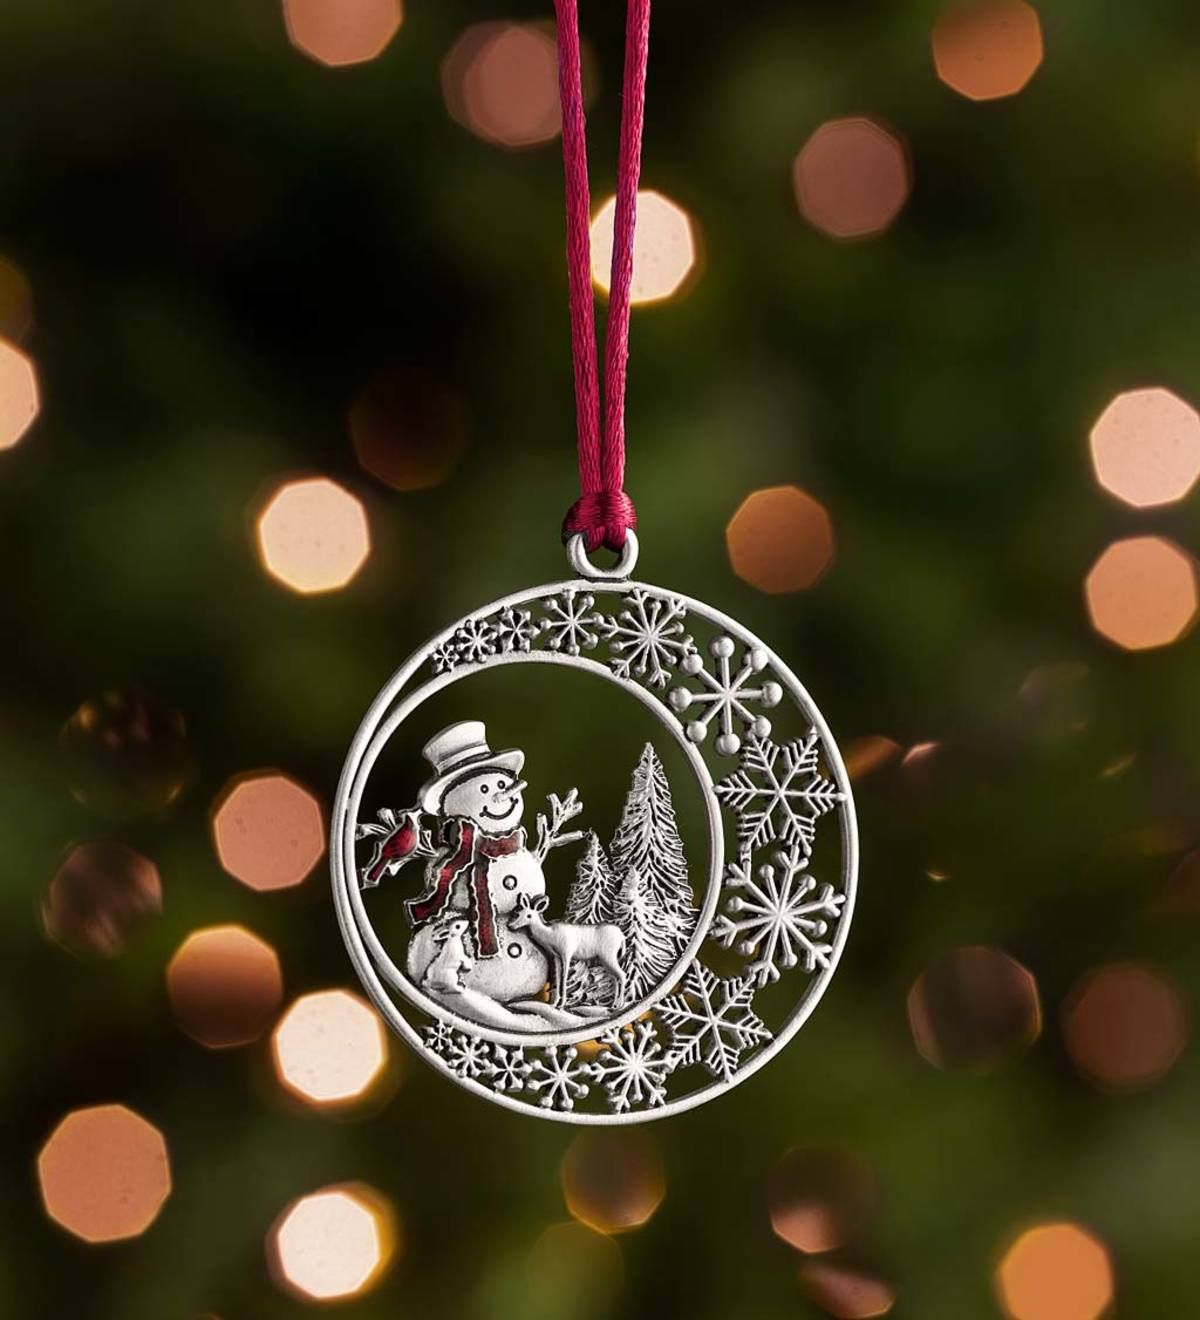 Solid Pewter Christmas Tree Ornament - Snowman